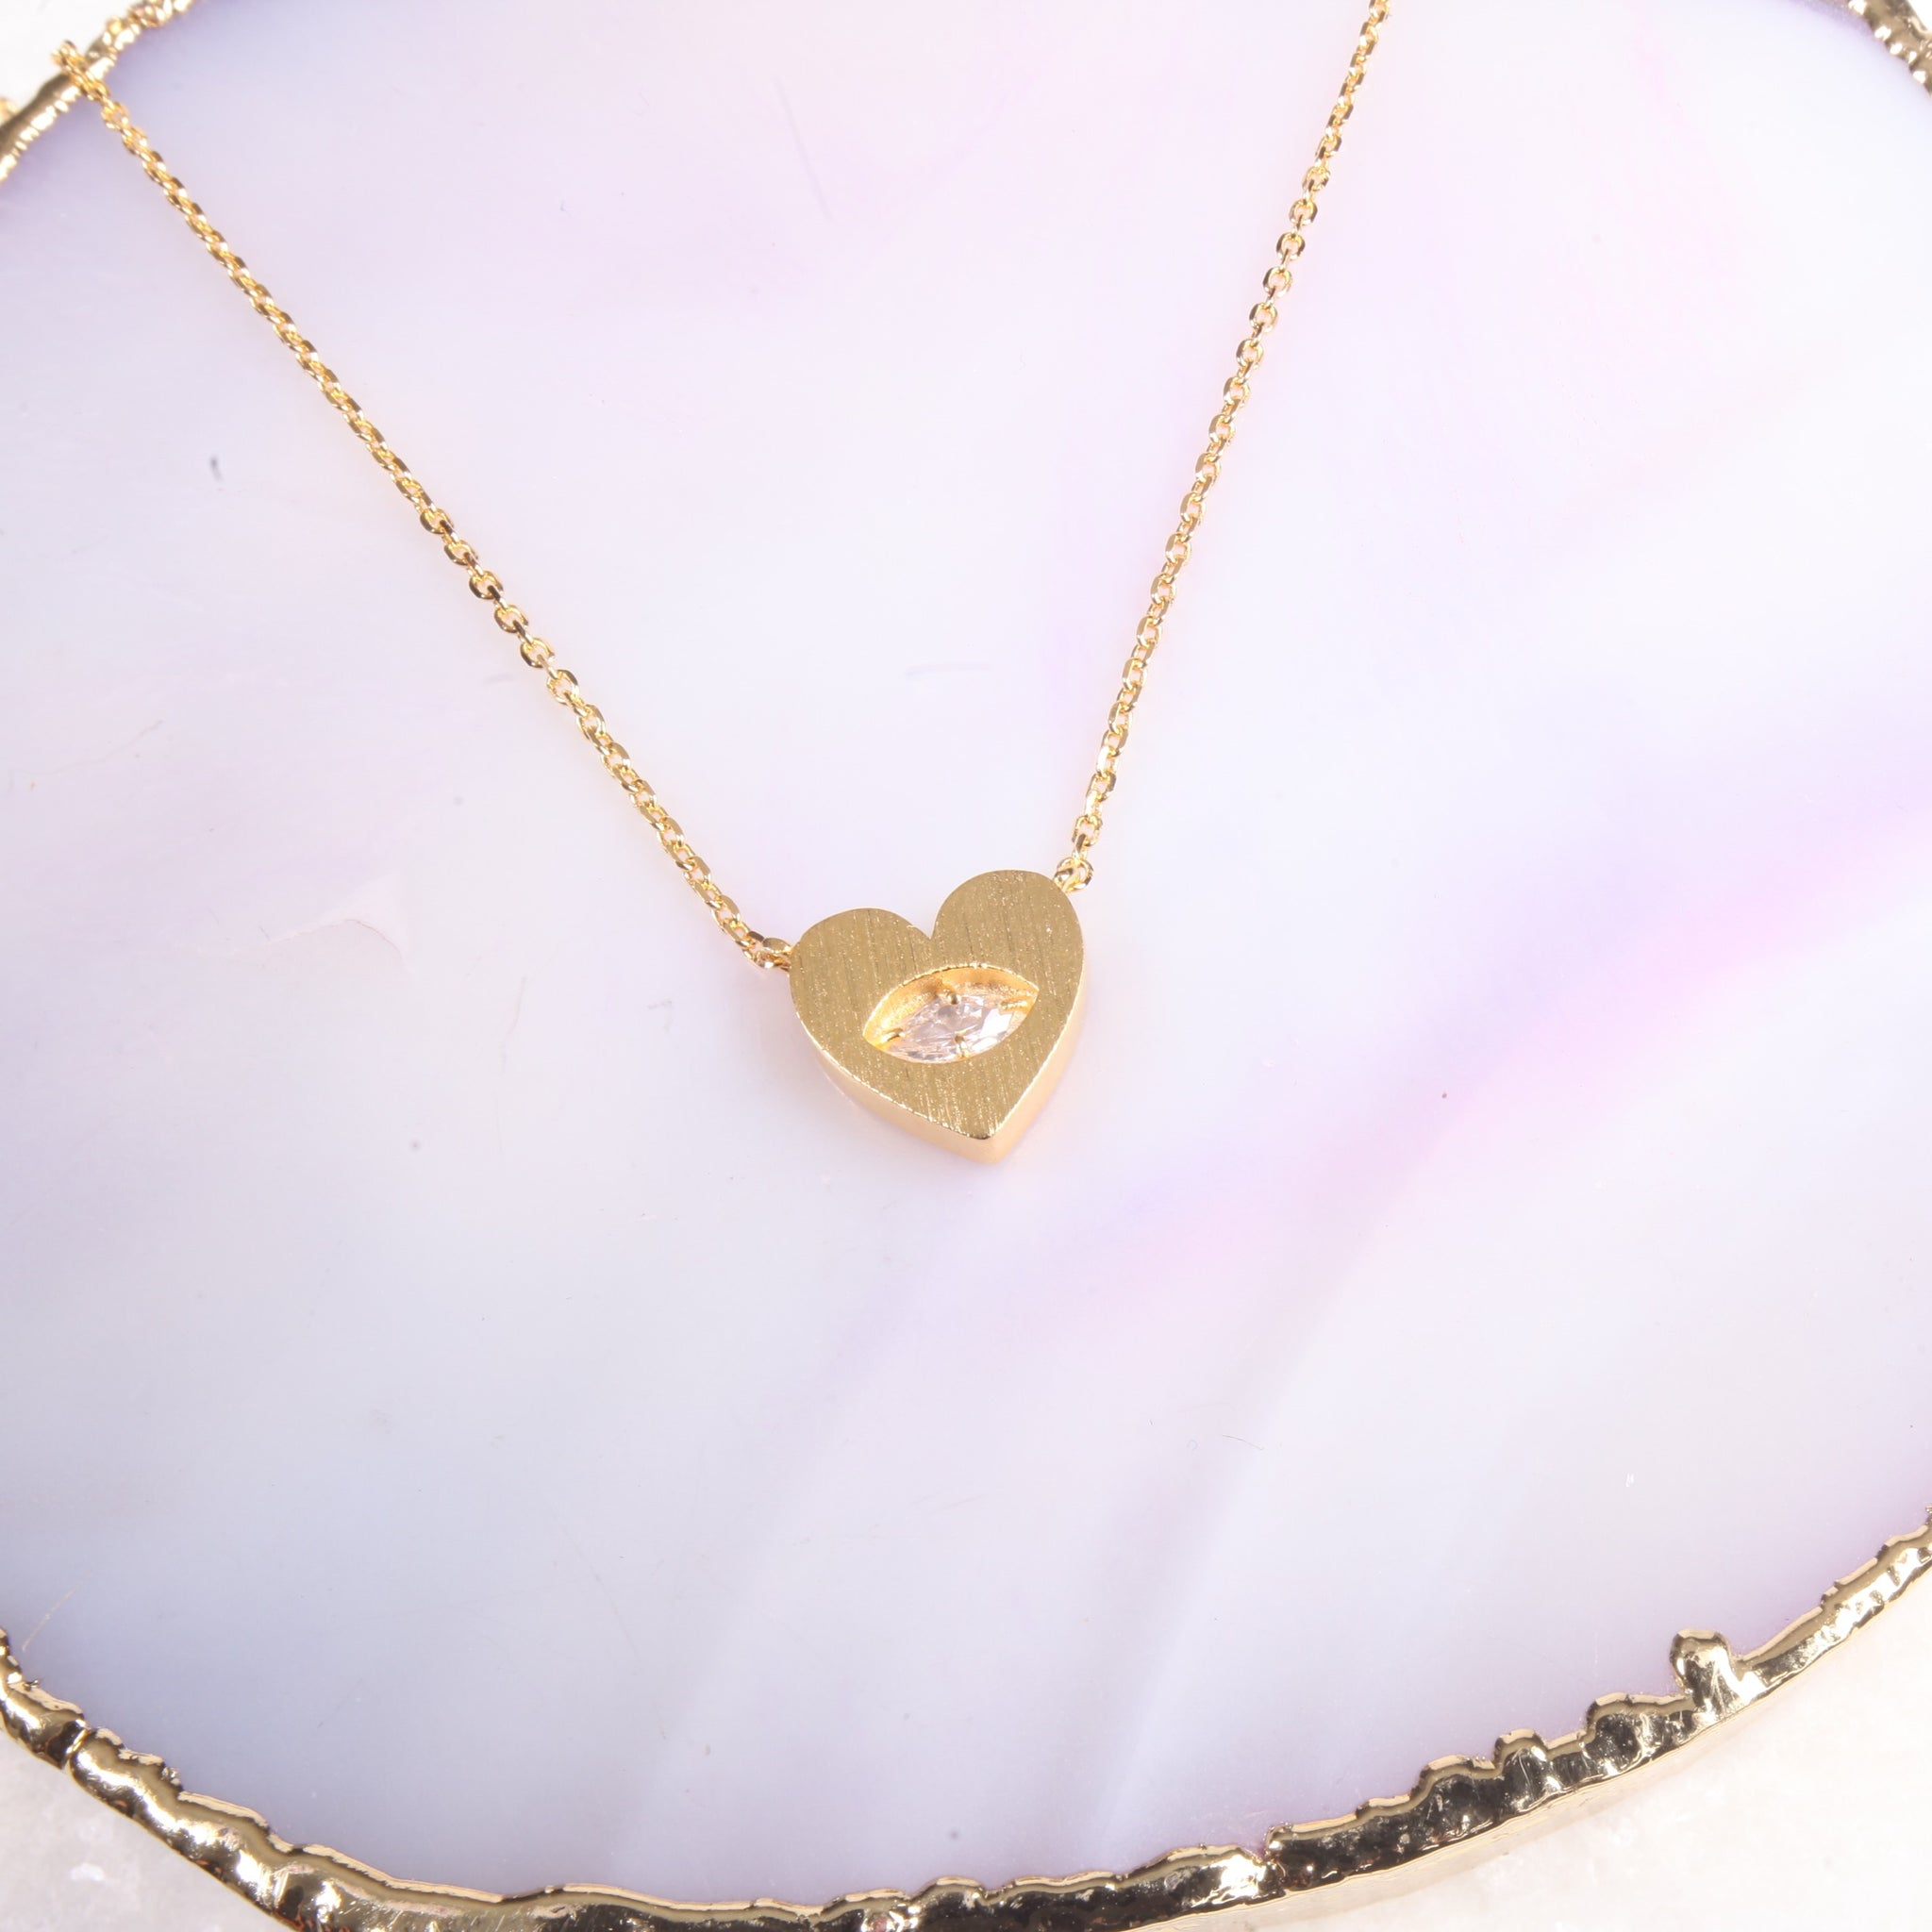 Mini Heart Charm Necklace